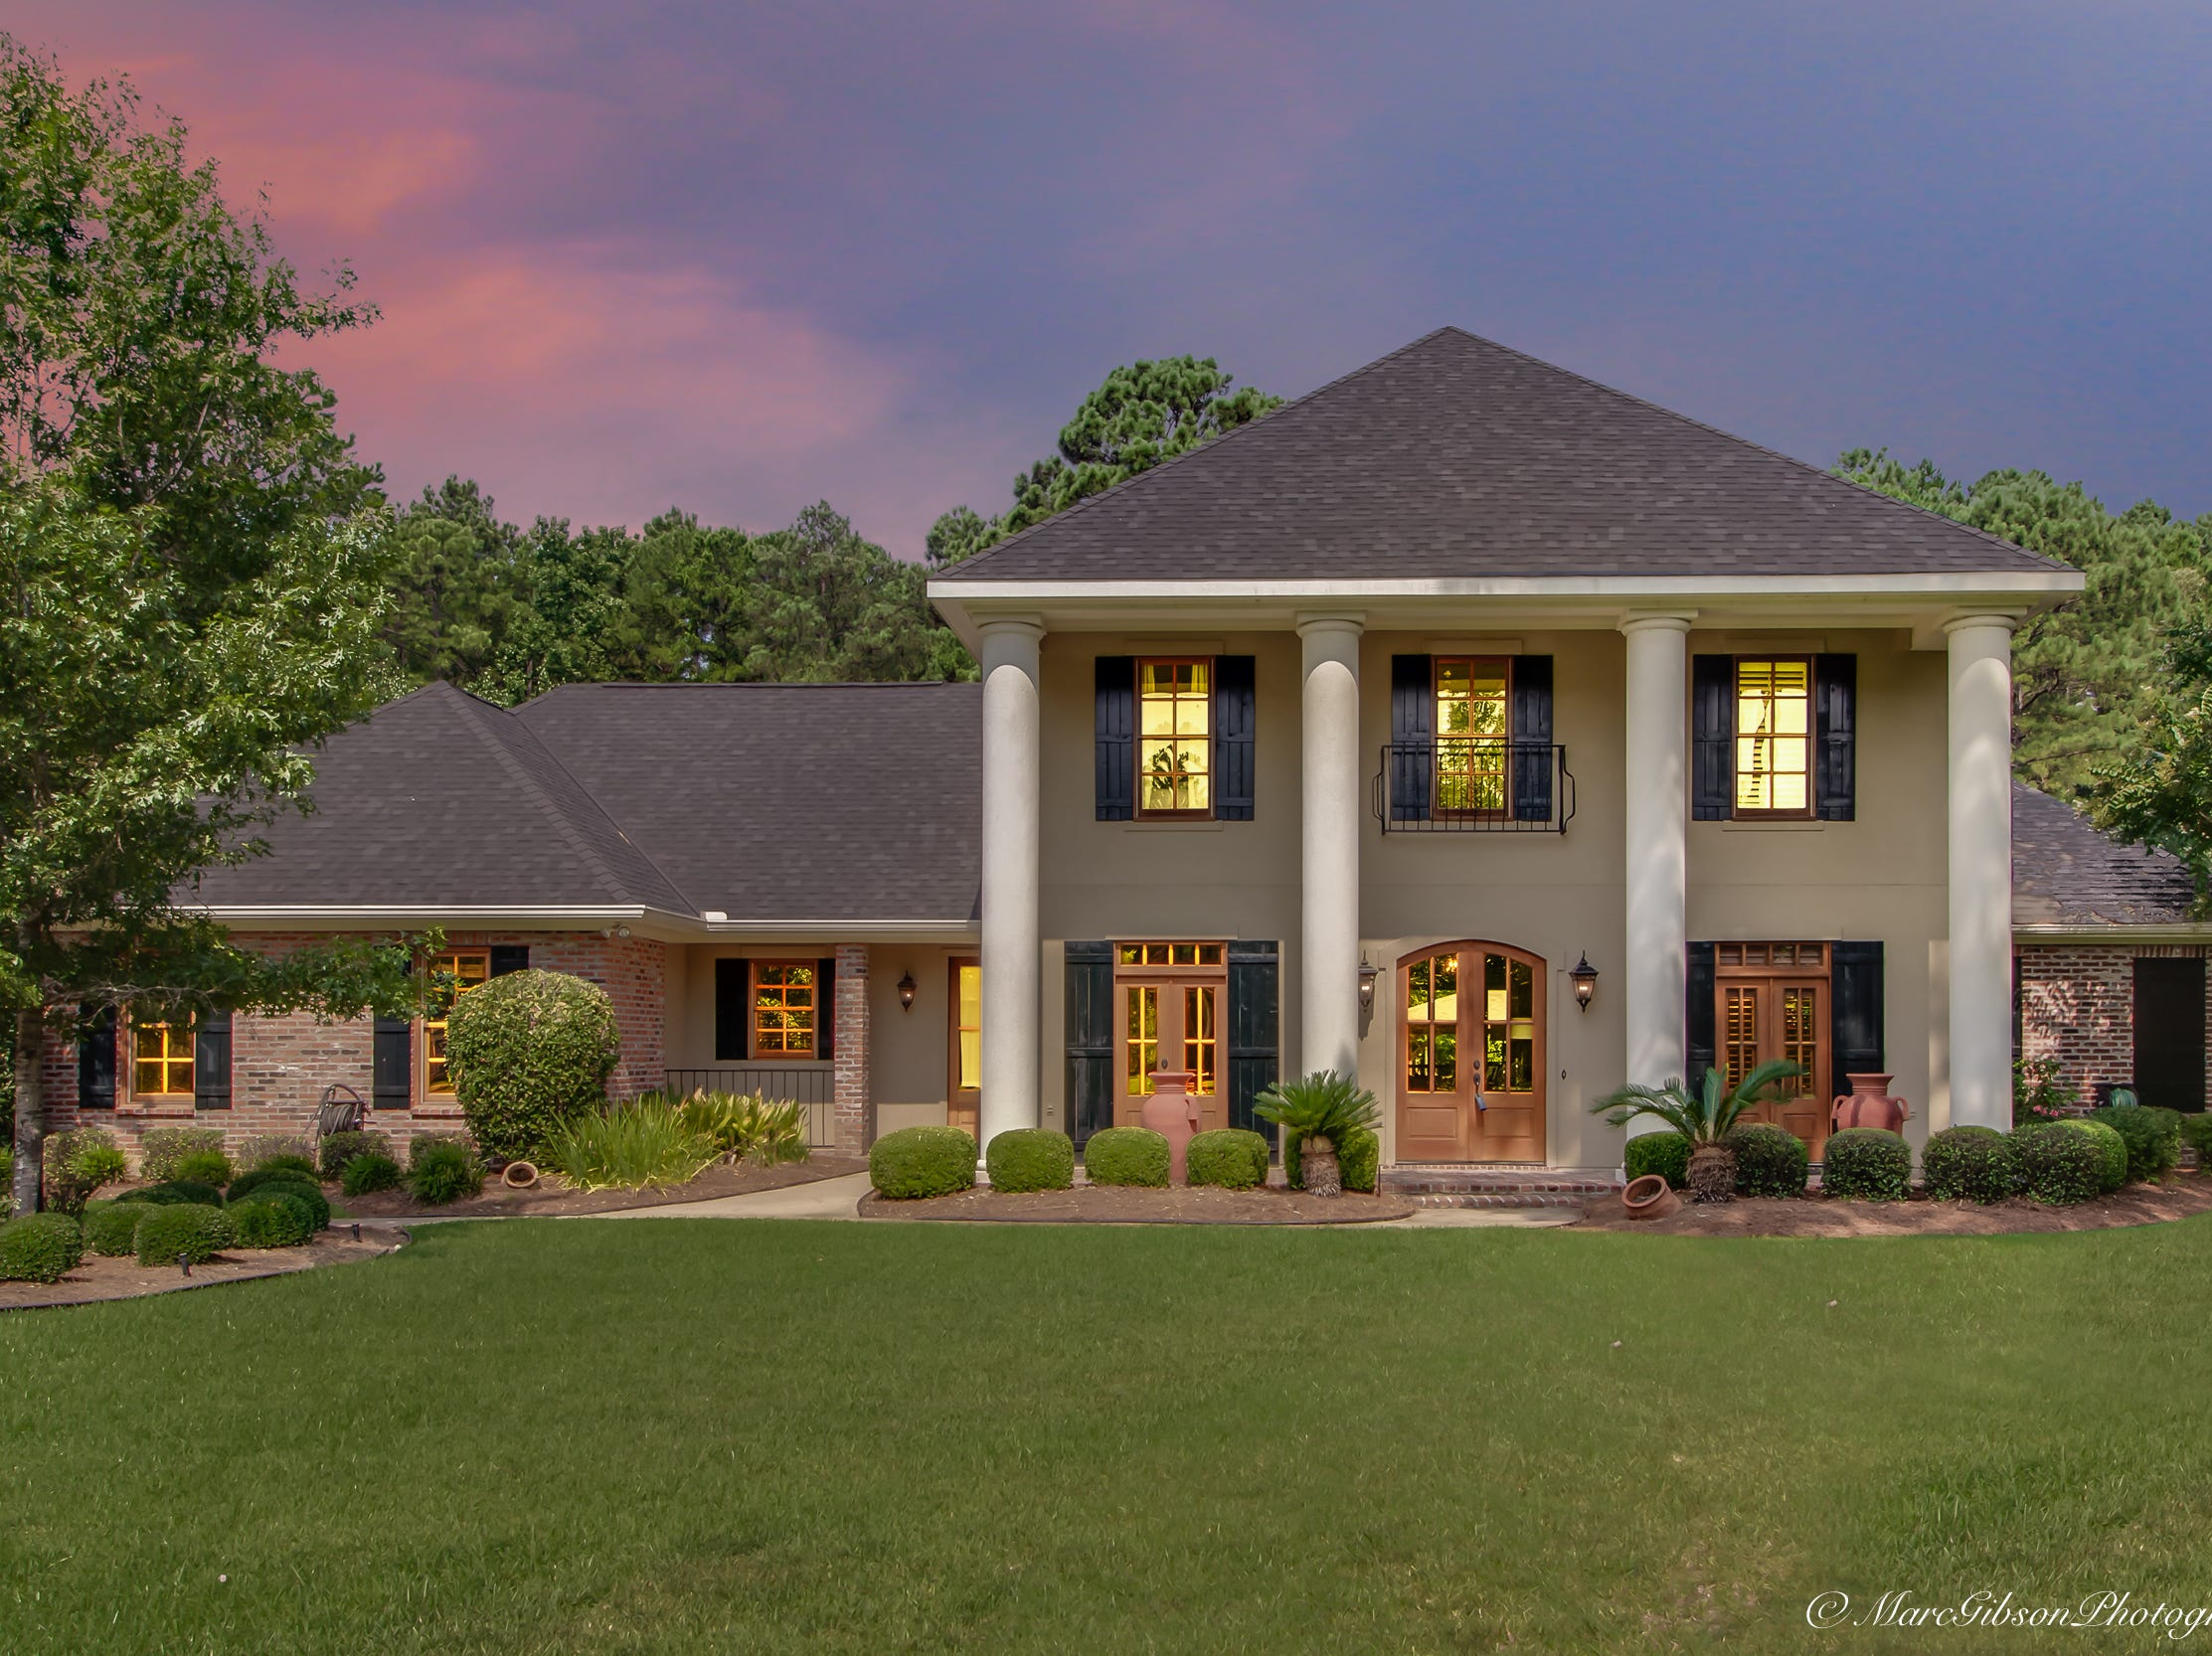 2828 Tuscany Circle, Shreveport  Price: $619,000  Details: 4 bedrooms, 4 bathrooms, 4,124 square feet  Special features: Stately Long Lake beauty, cook's kitchen with 6 gas burner stove,  saltwater pool and entertaining space.   Contact: Andy Osborn, 564-3701